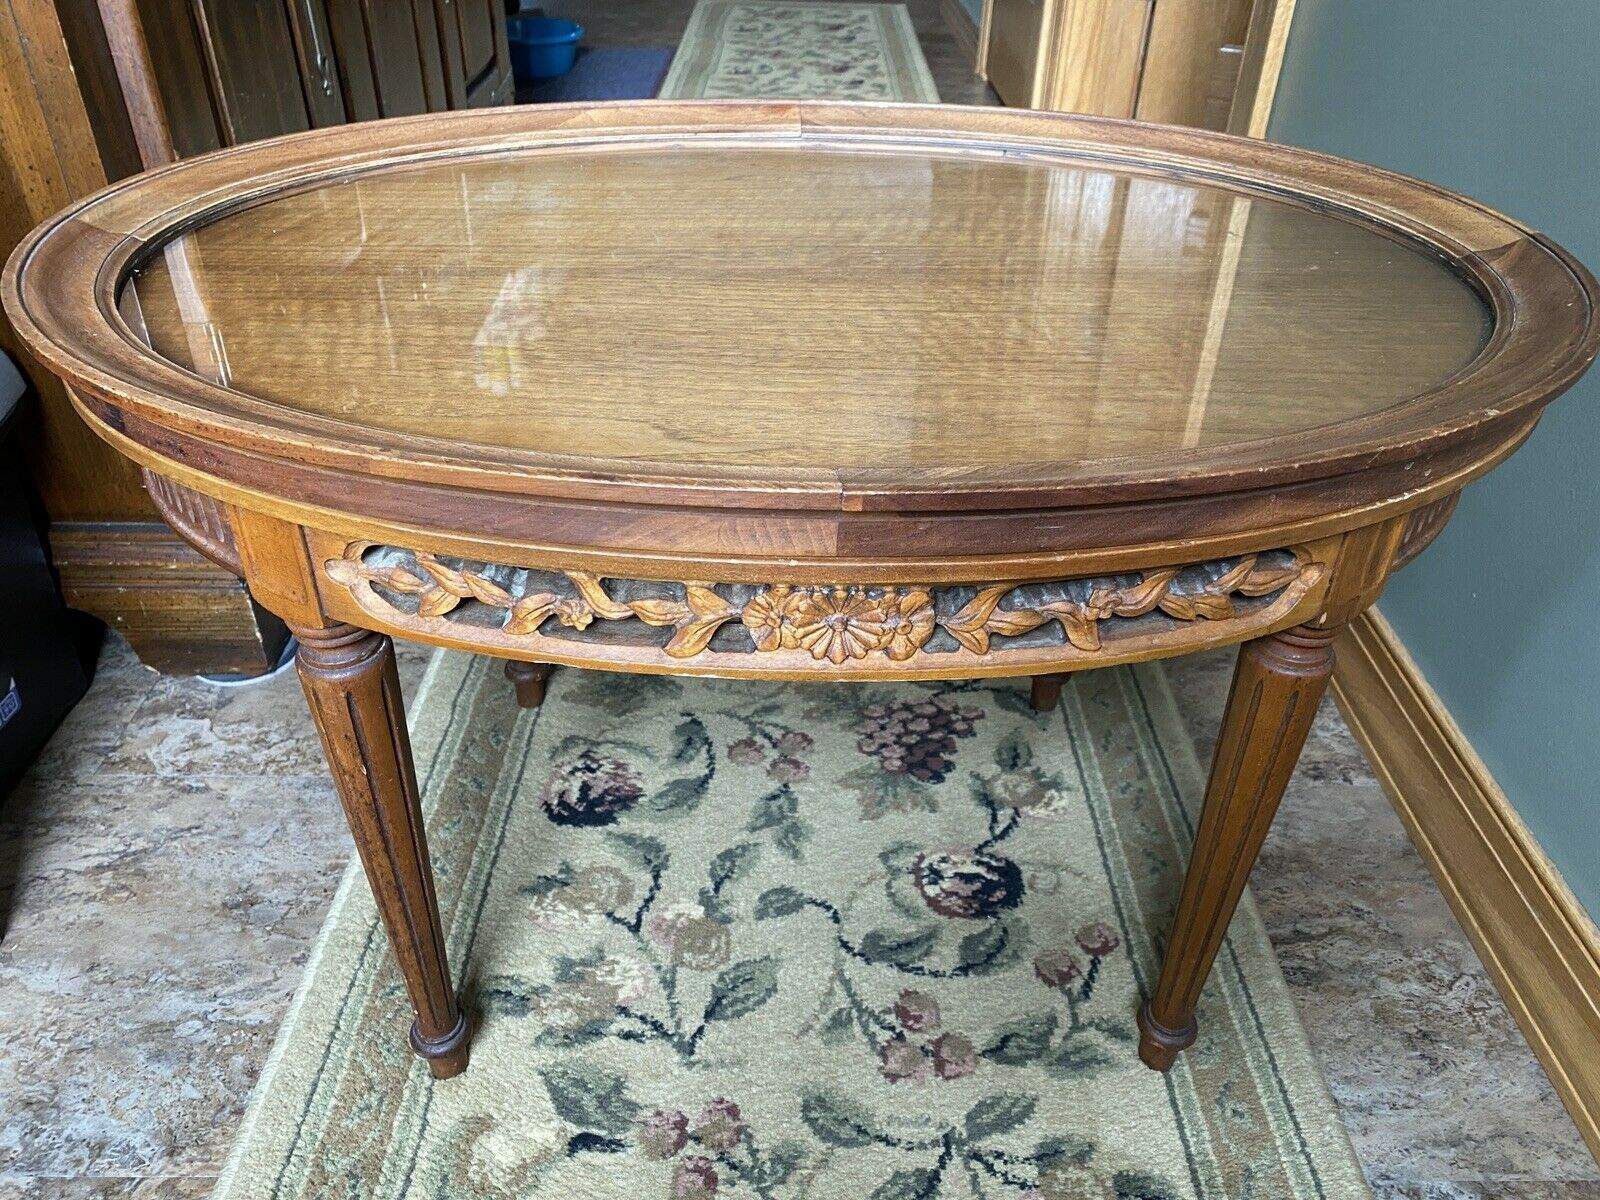 True Grand Rapids Carved French Coffee Table With Removable Glass Top Pre 1950 - $89.00